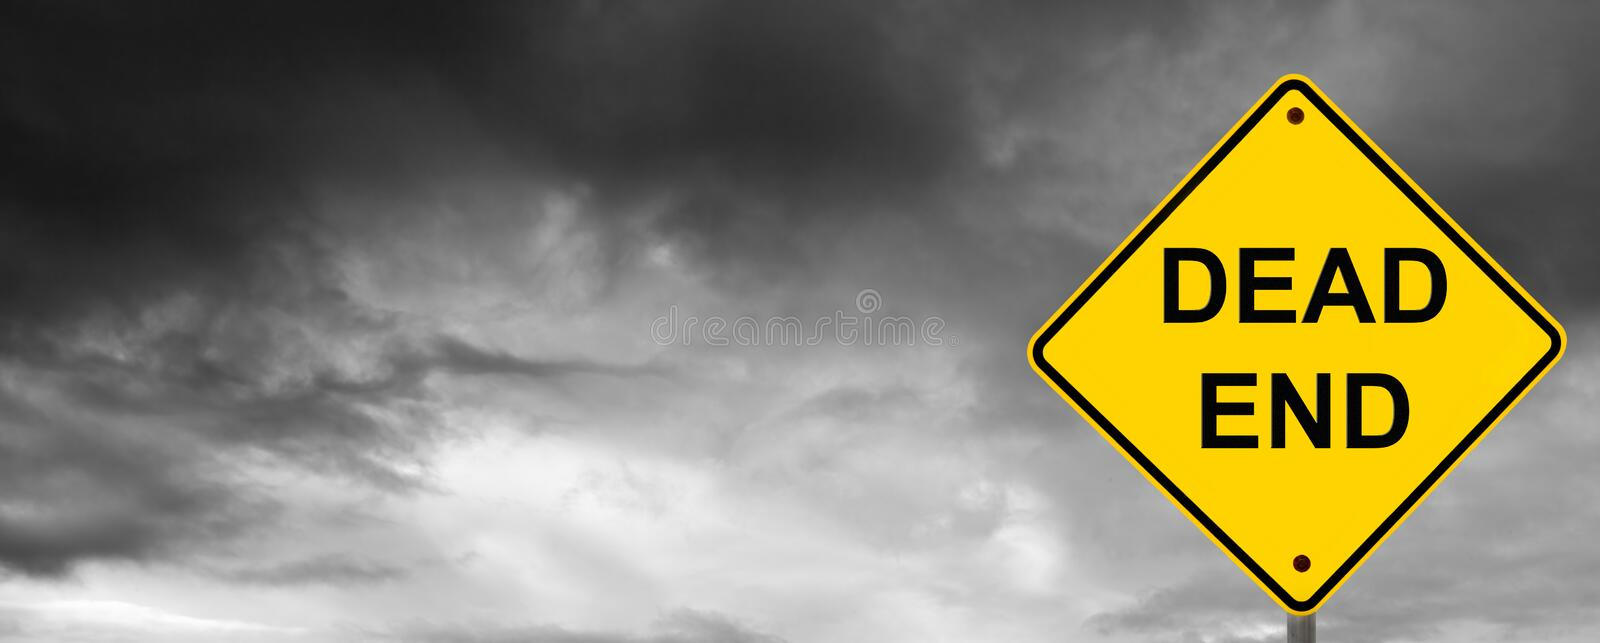 Dead End Sign. With dark storm clouds behind royalty free stock photo